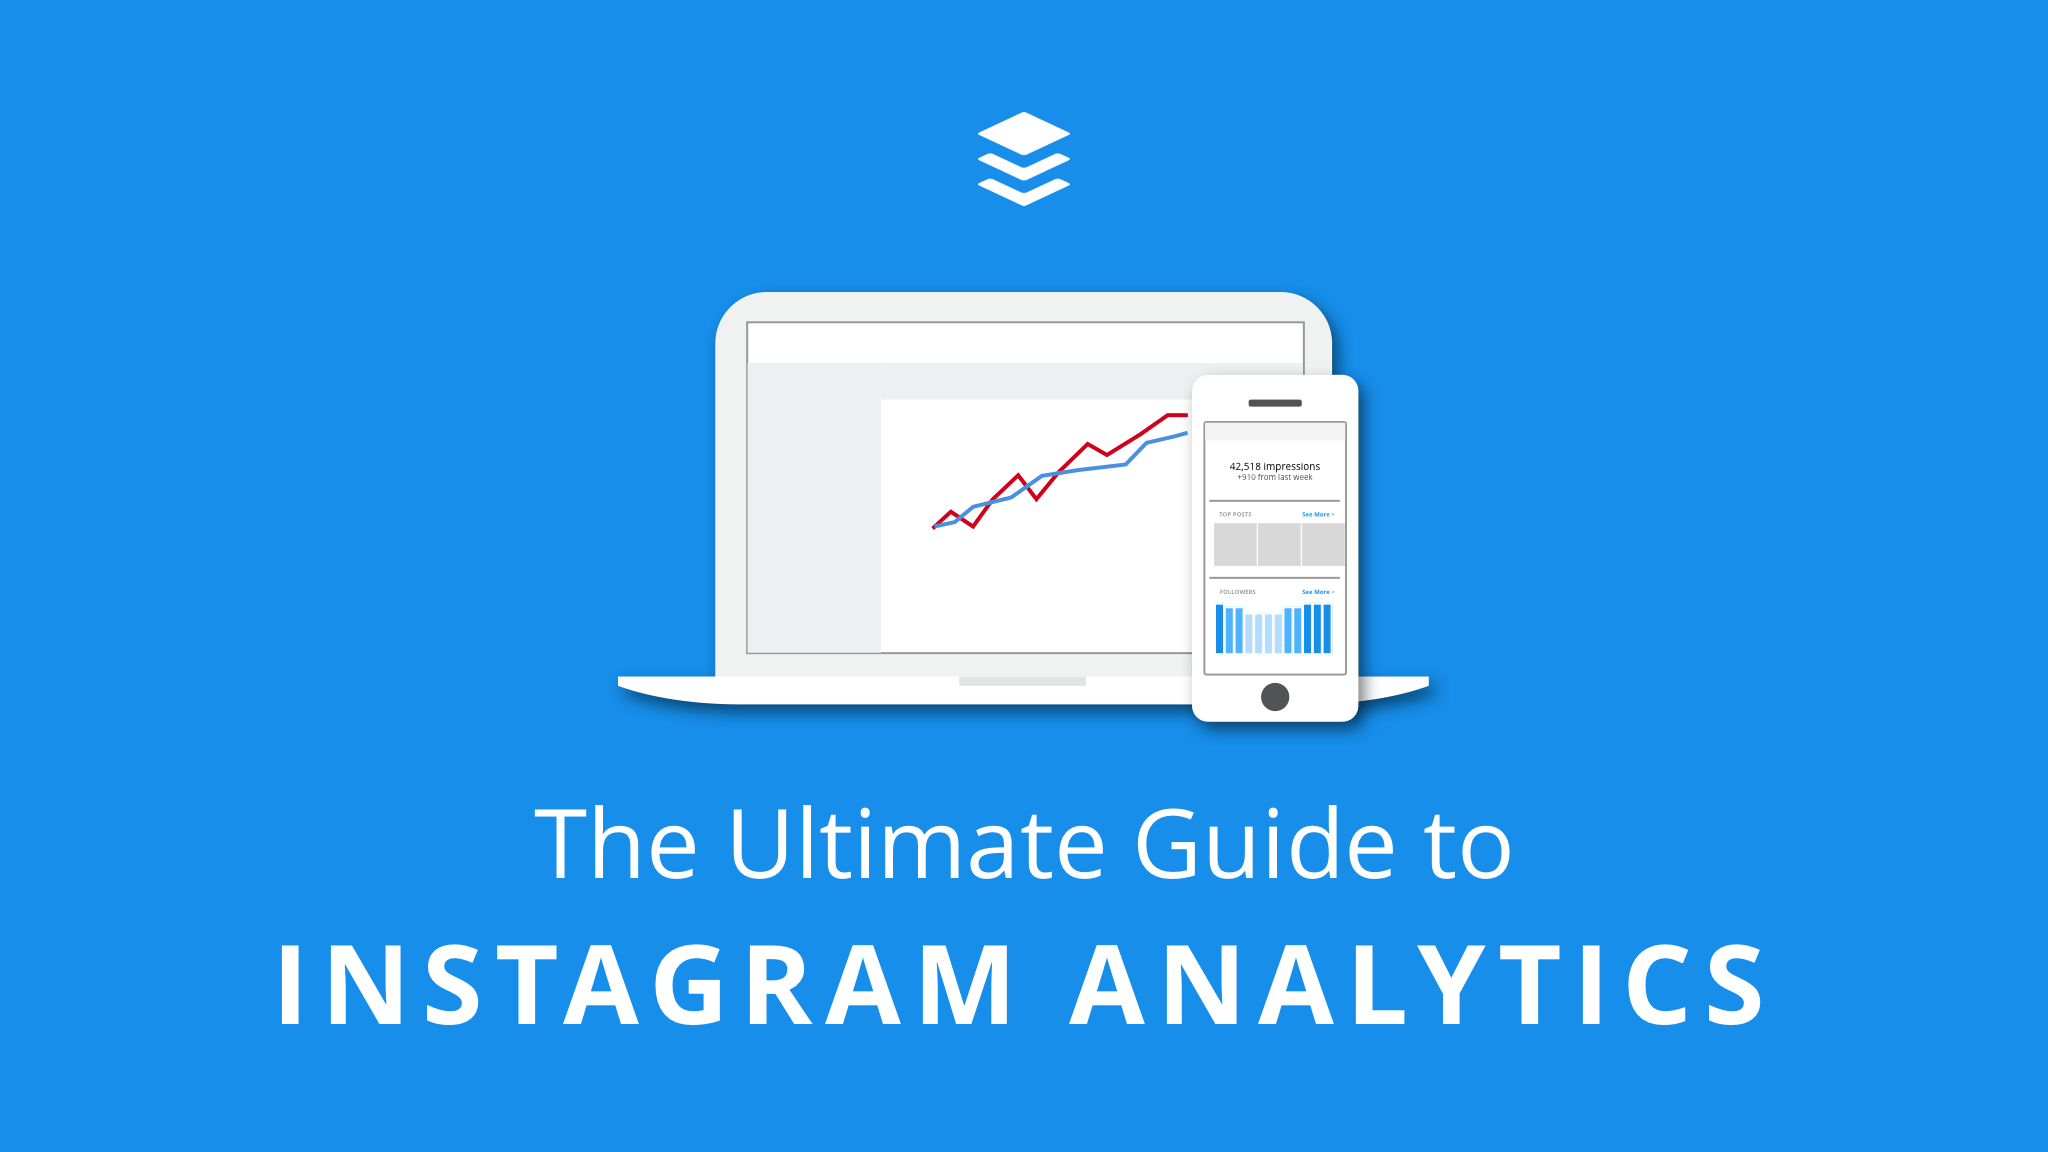 The Ultimate Guide to Instagram Analytics